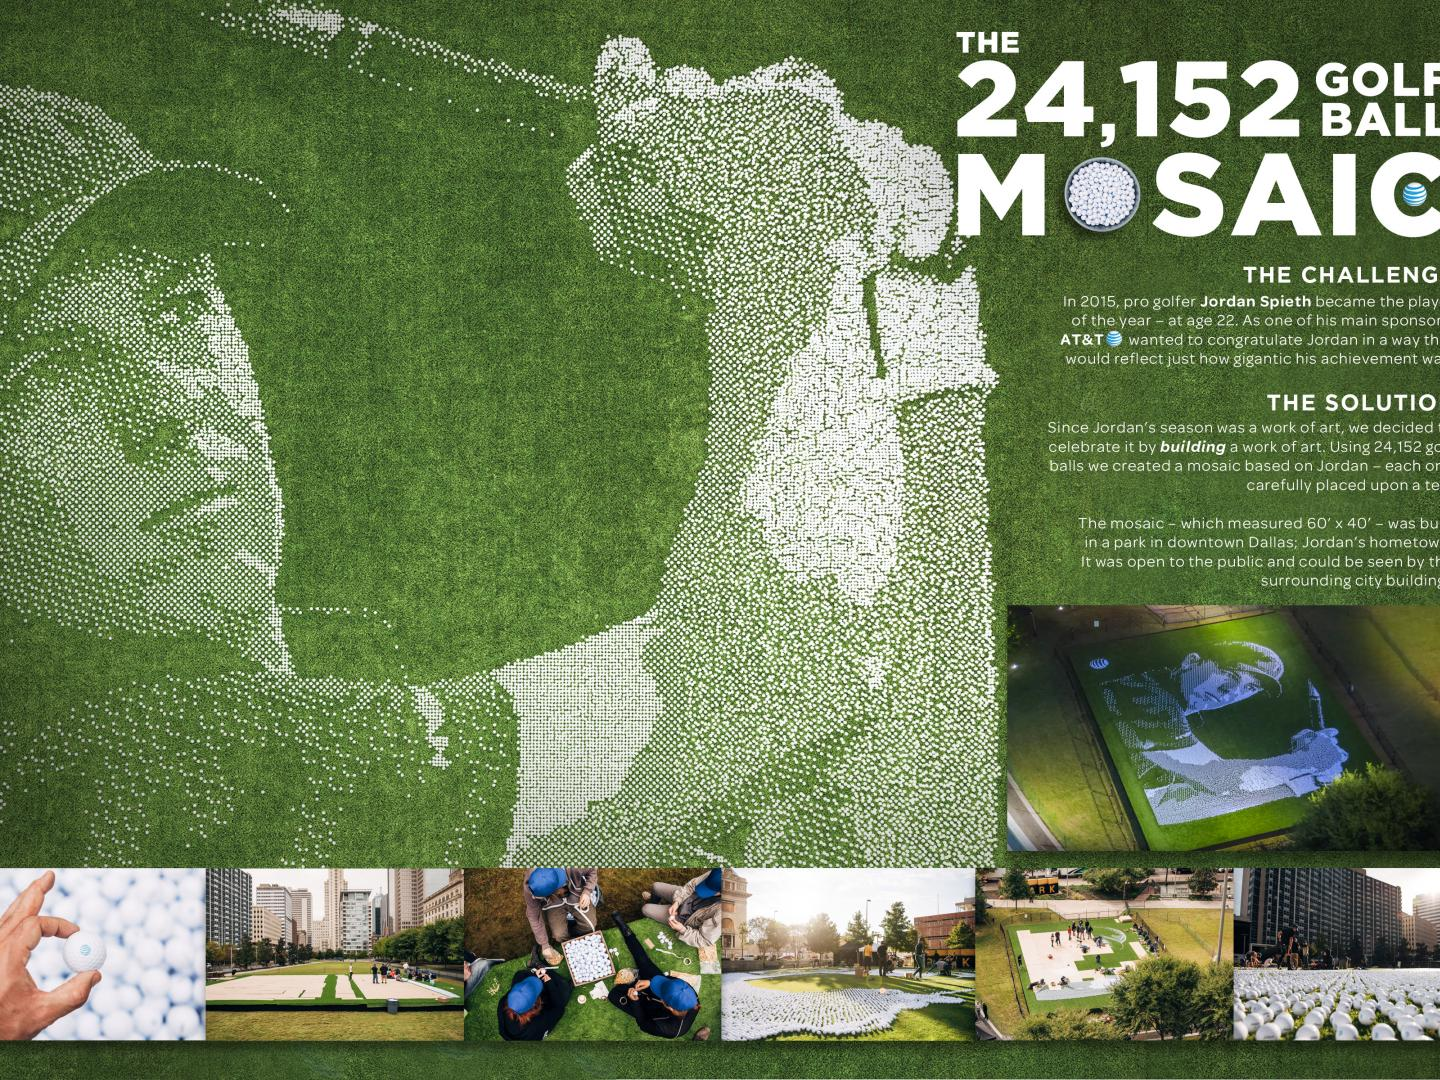 The 24,152 Golf Ball Mosaic Thumbnail